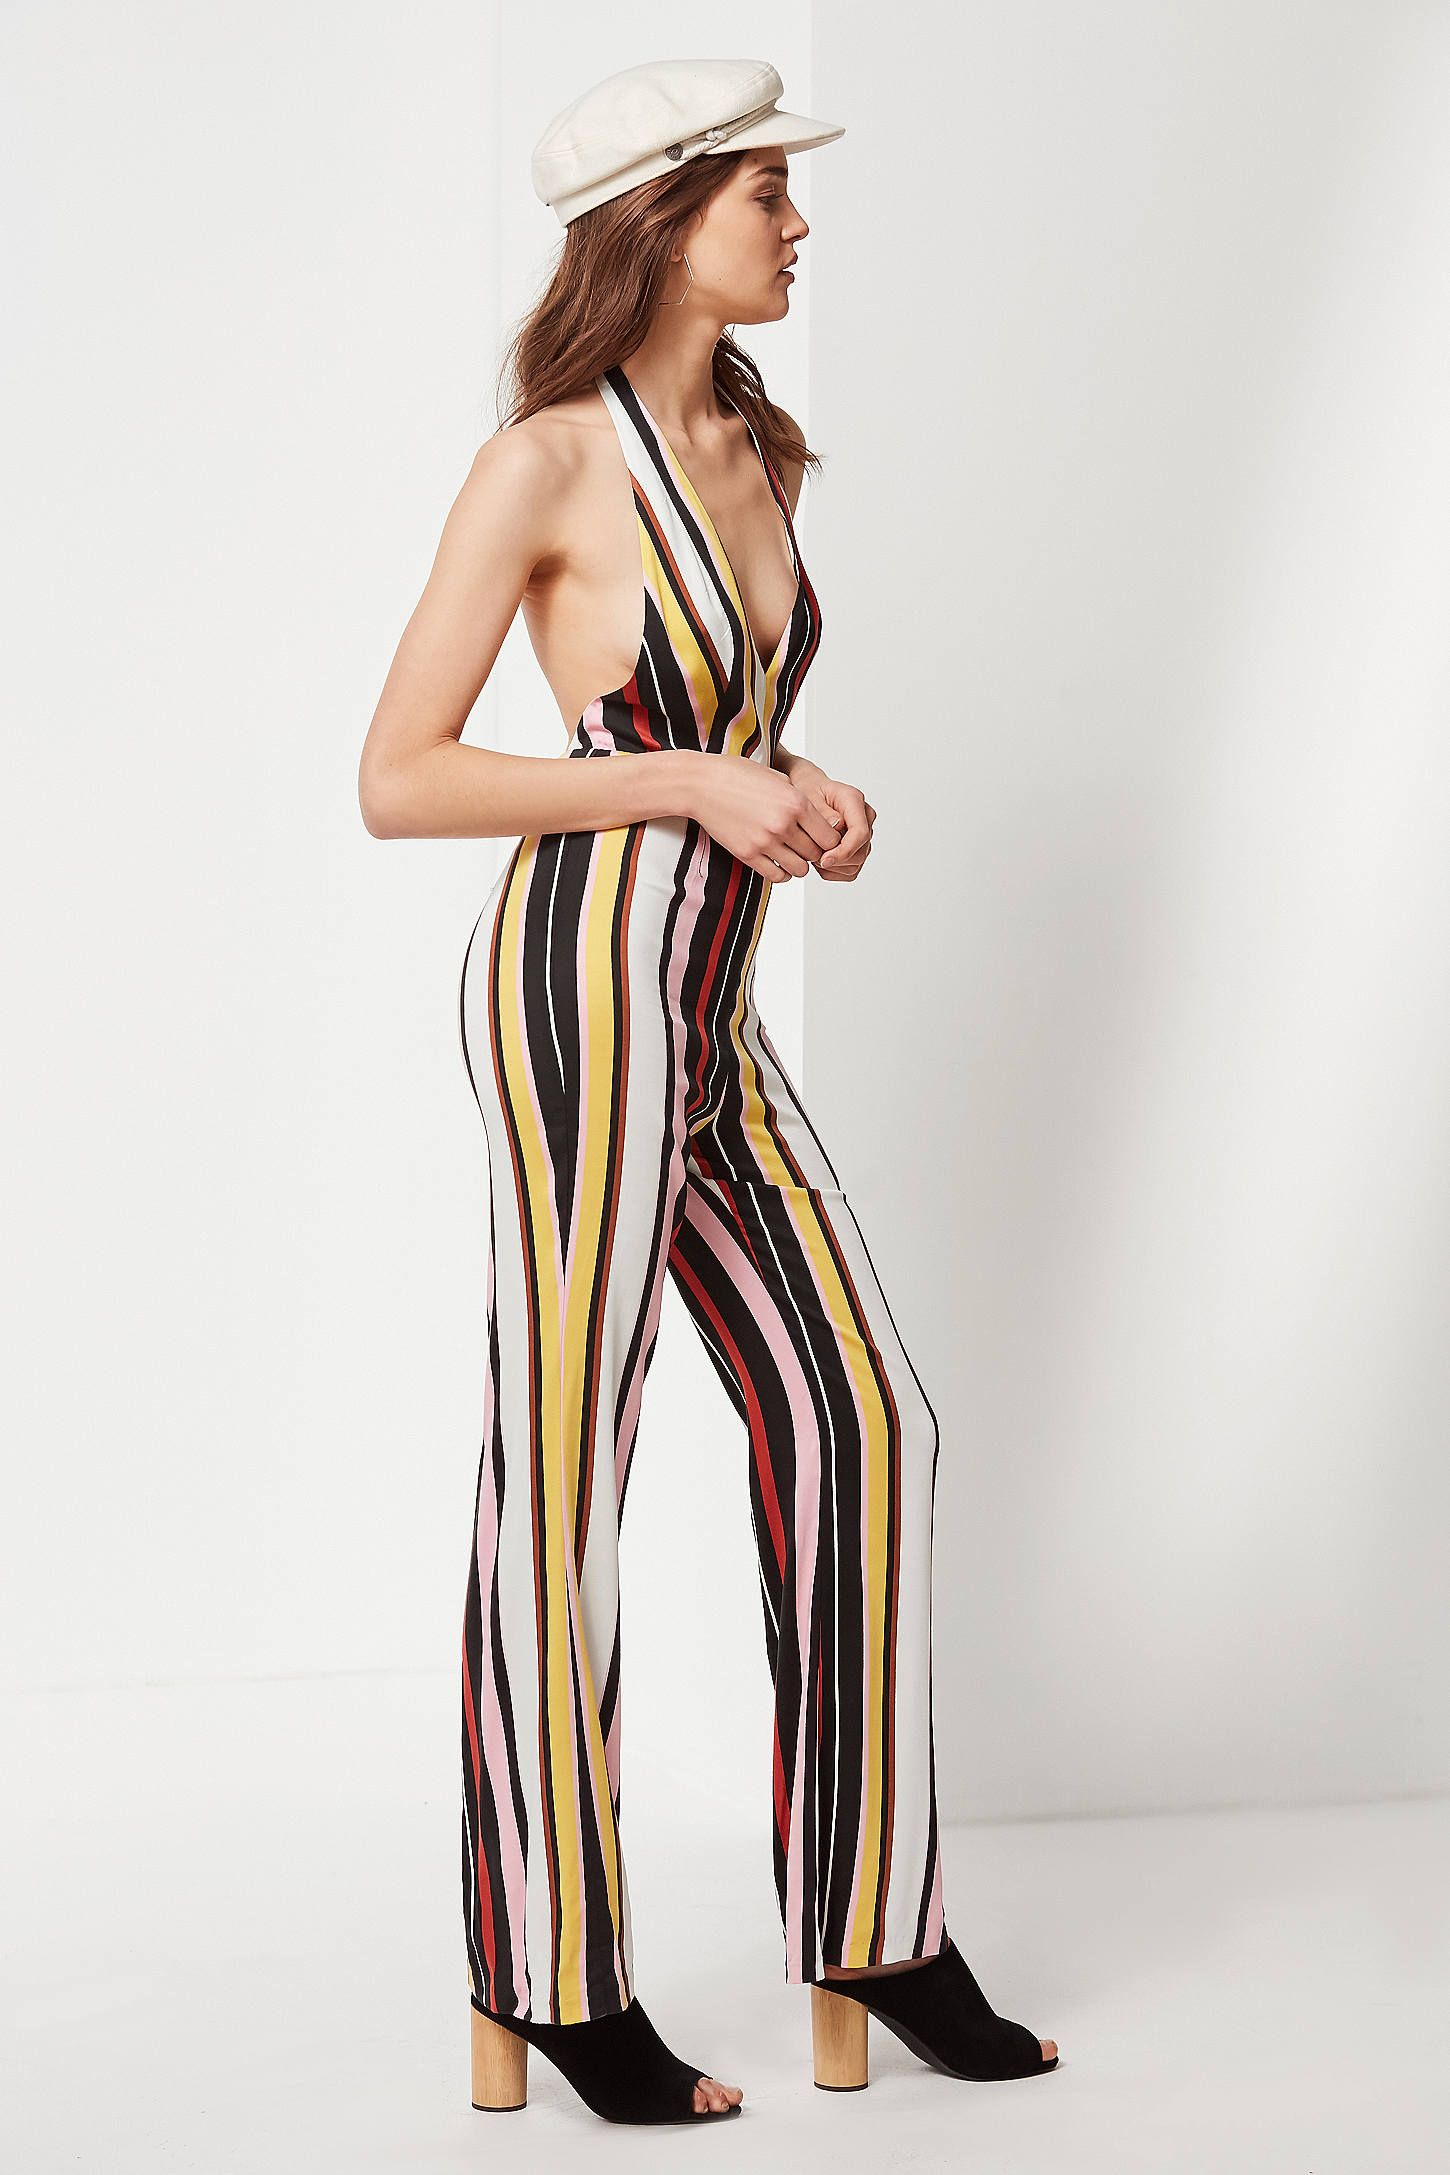 603929c7b7f Shop UO Shiloh Plunging Flare Jumpsuit at Urban Outfitters today. We carry  all the latest styles